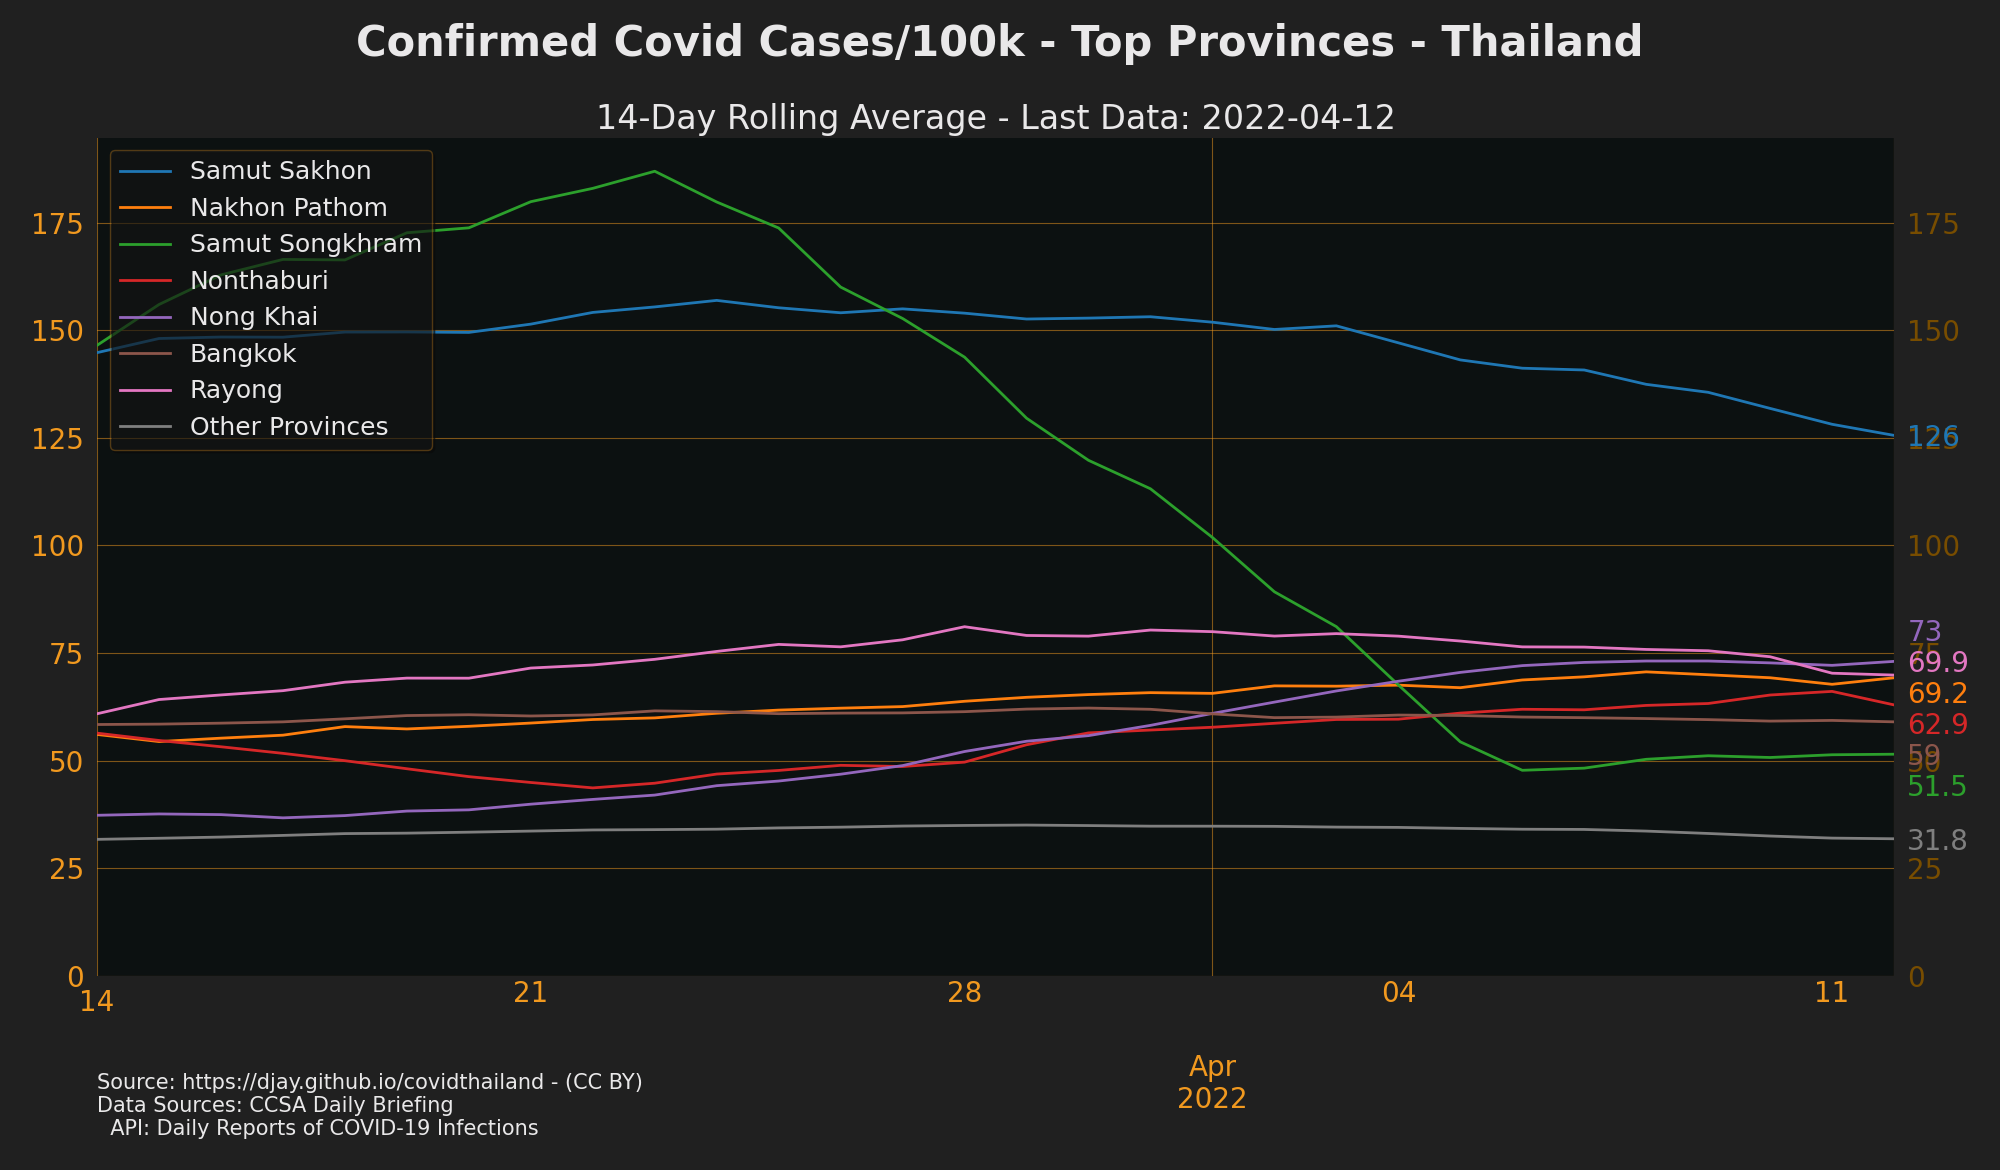 Provinces with Most Cases